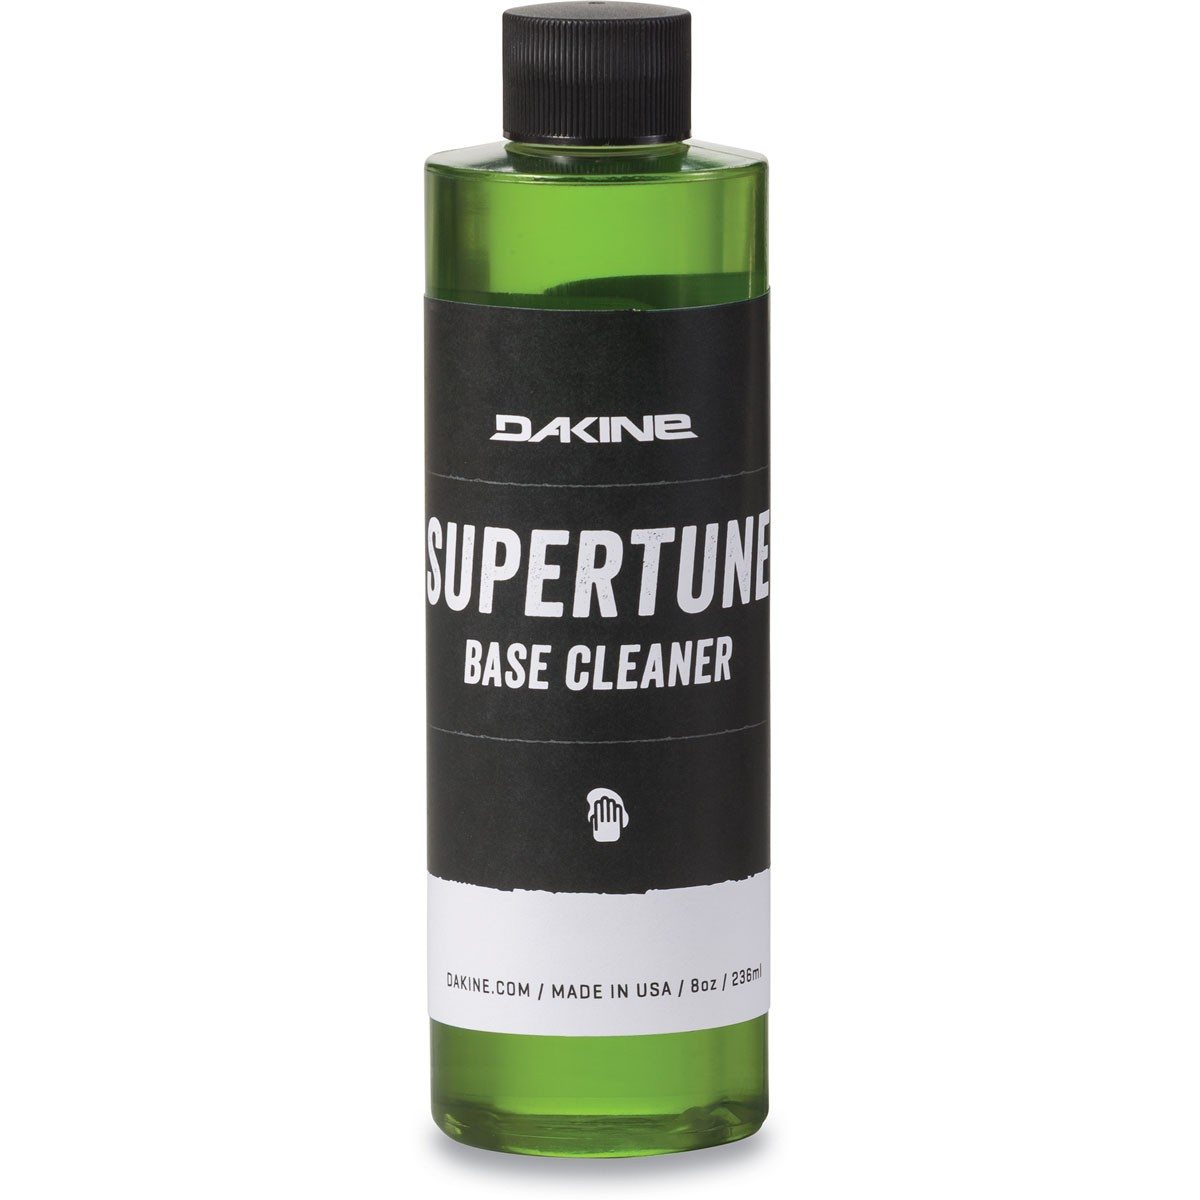 Limpiador Supertune Base Cleaner Dakine